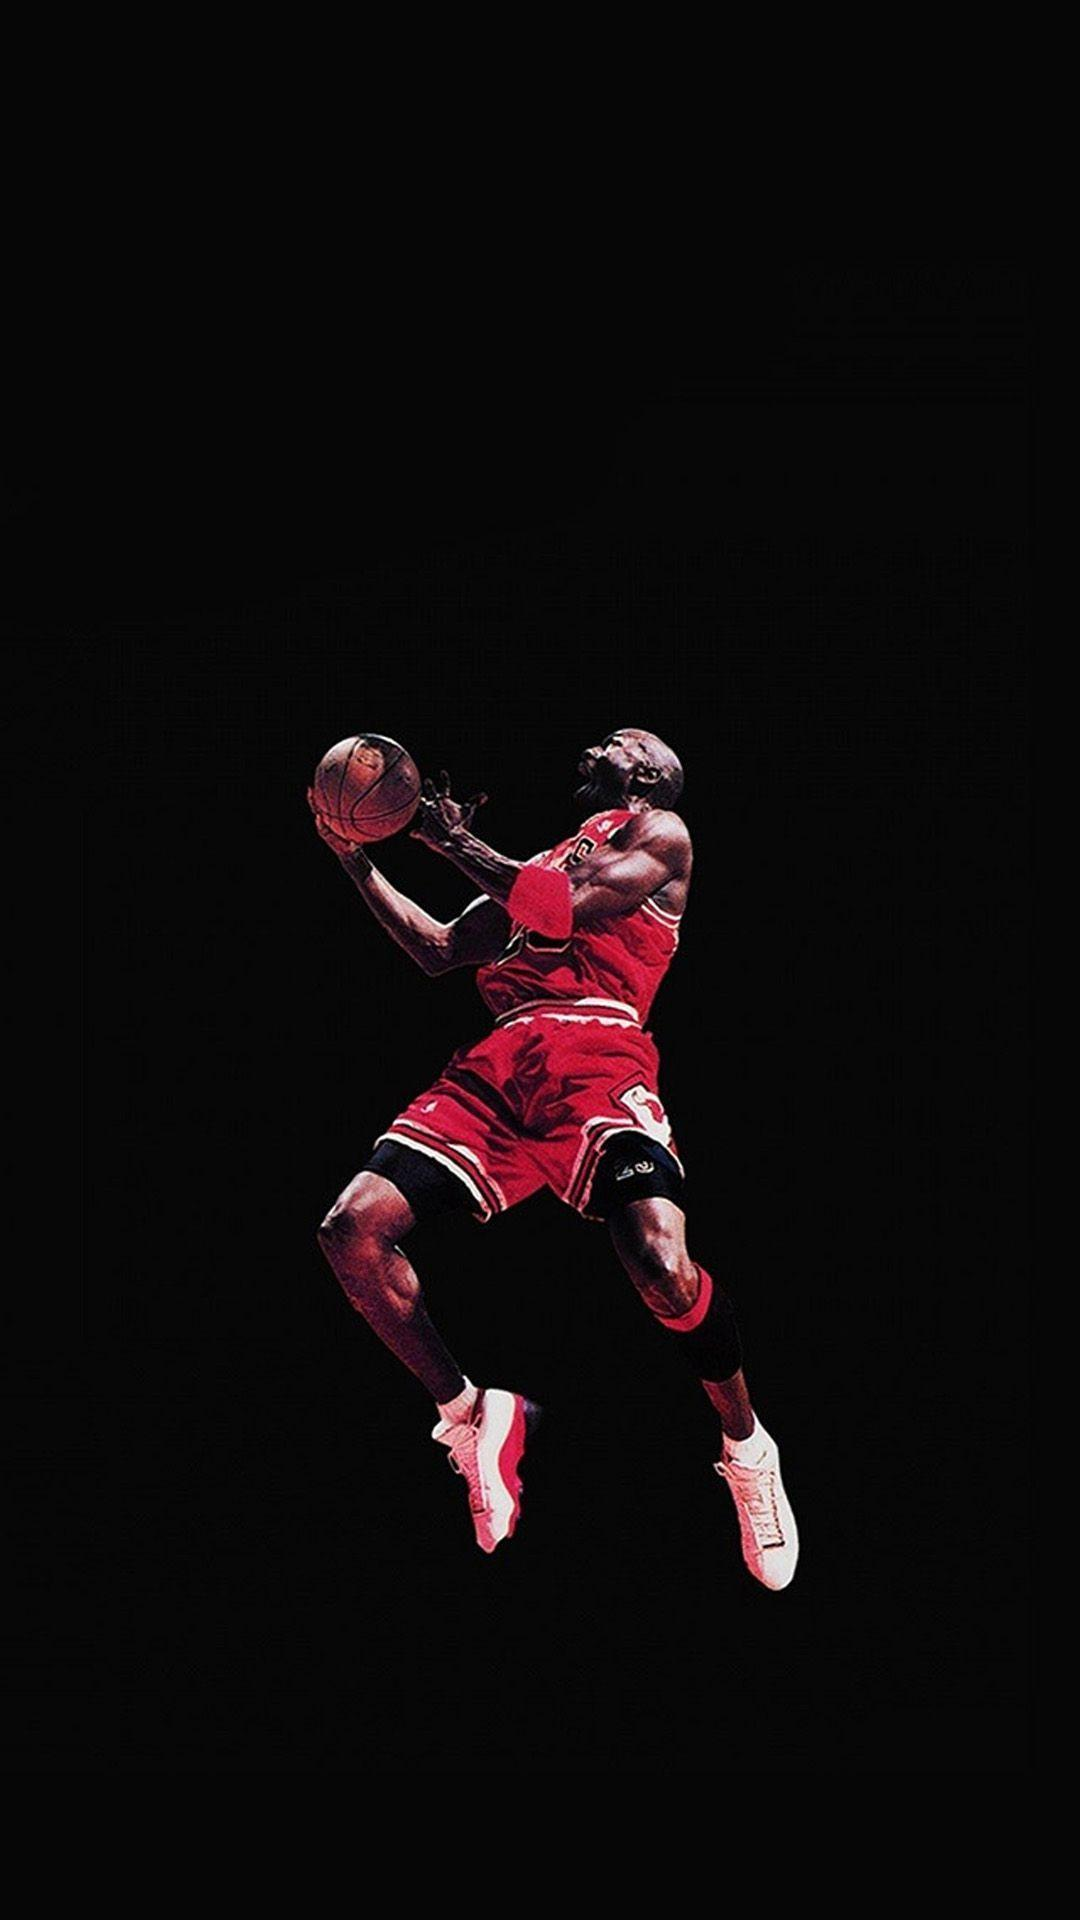 Air Jordan Wallpapers for Galaxy S5.jpg